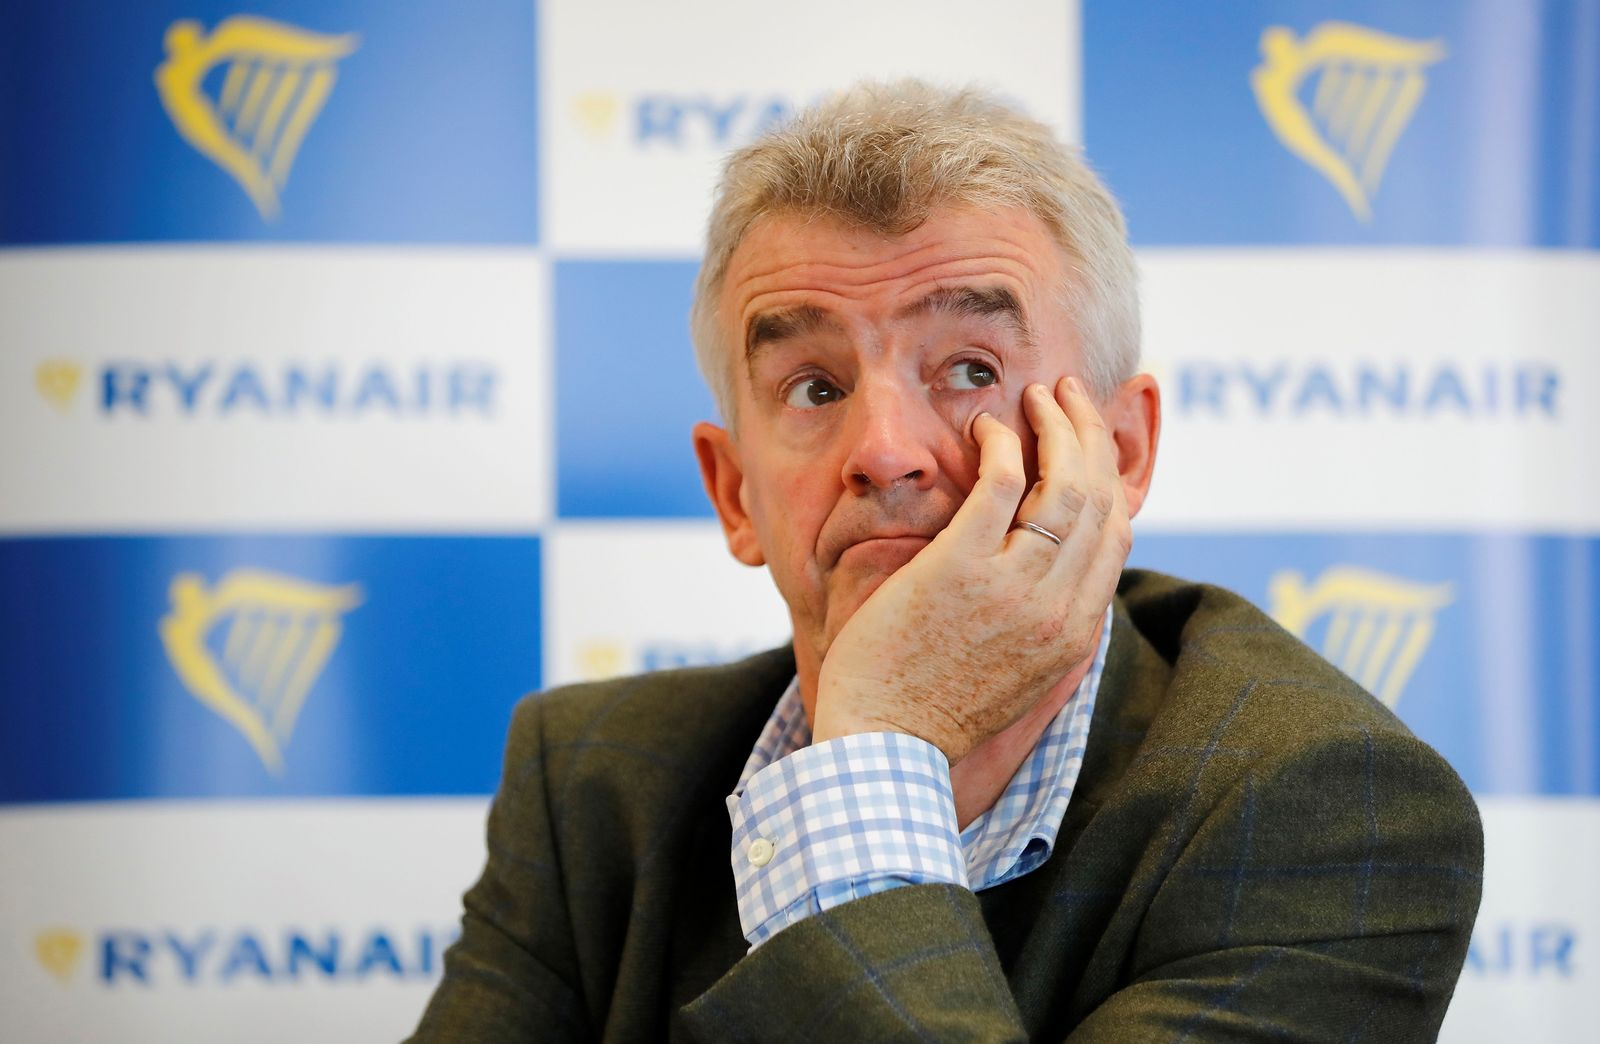 IRELAND-AVIATION-STRIKE-RYANAIR (Kopie)